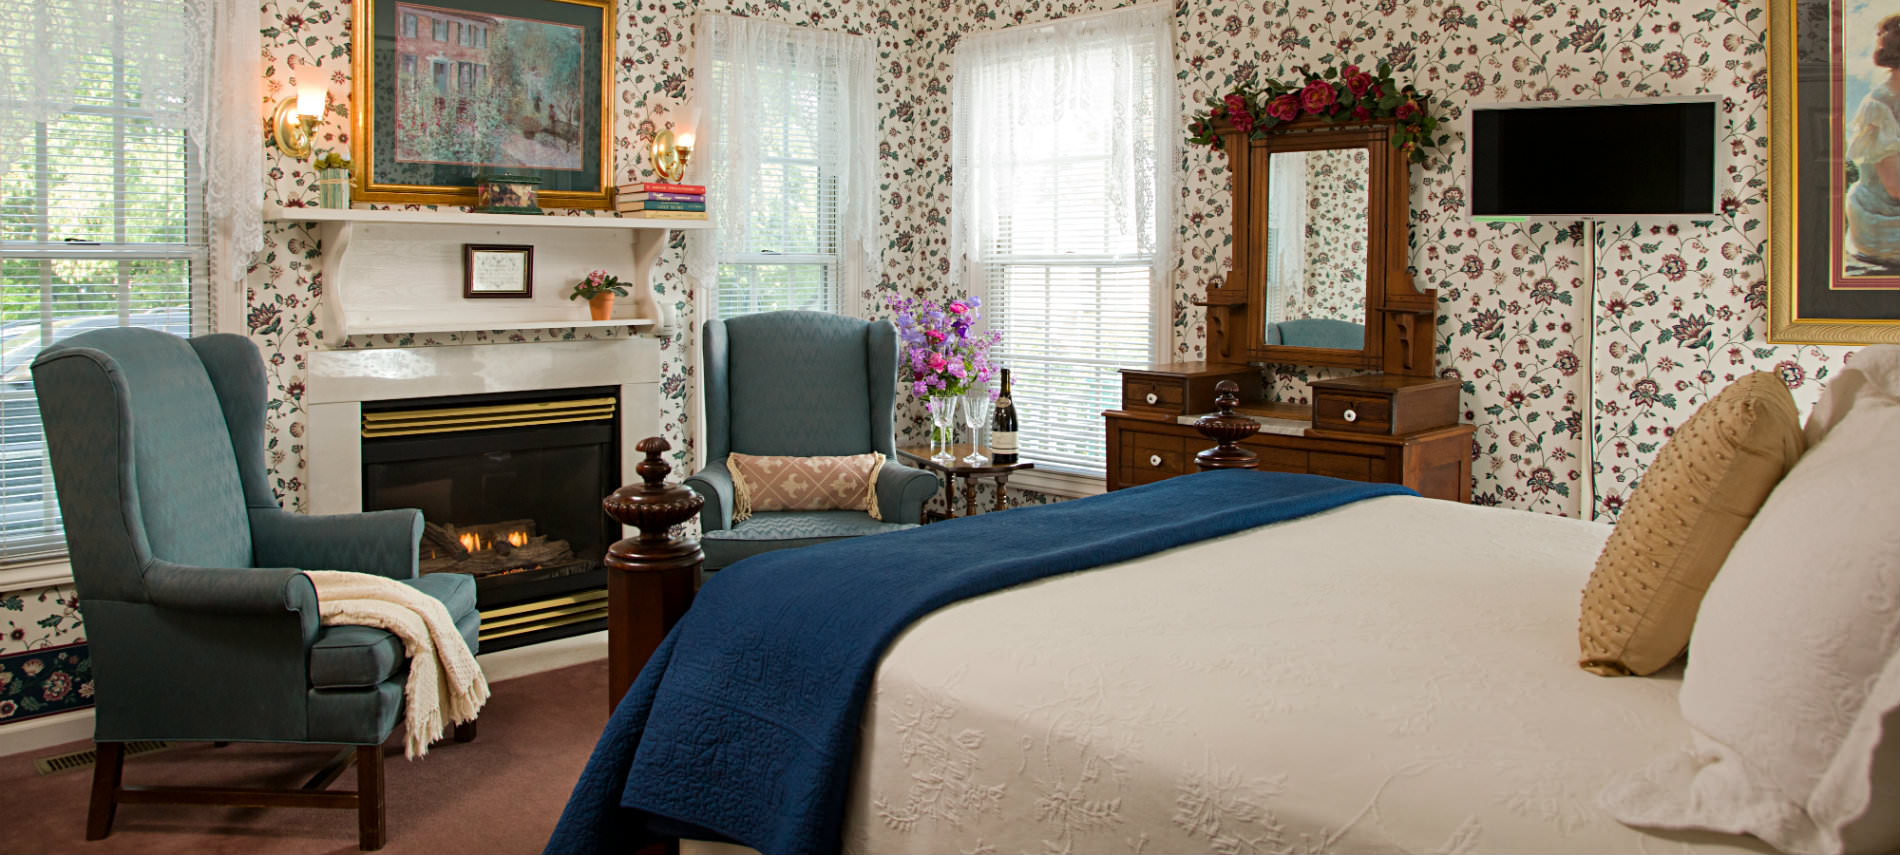 Queen sized bed in flowered wallpaper brightly lit room, fireplace, two green Queen Anne Chairs, brown carpet.